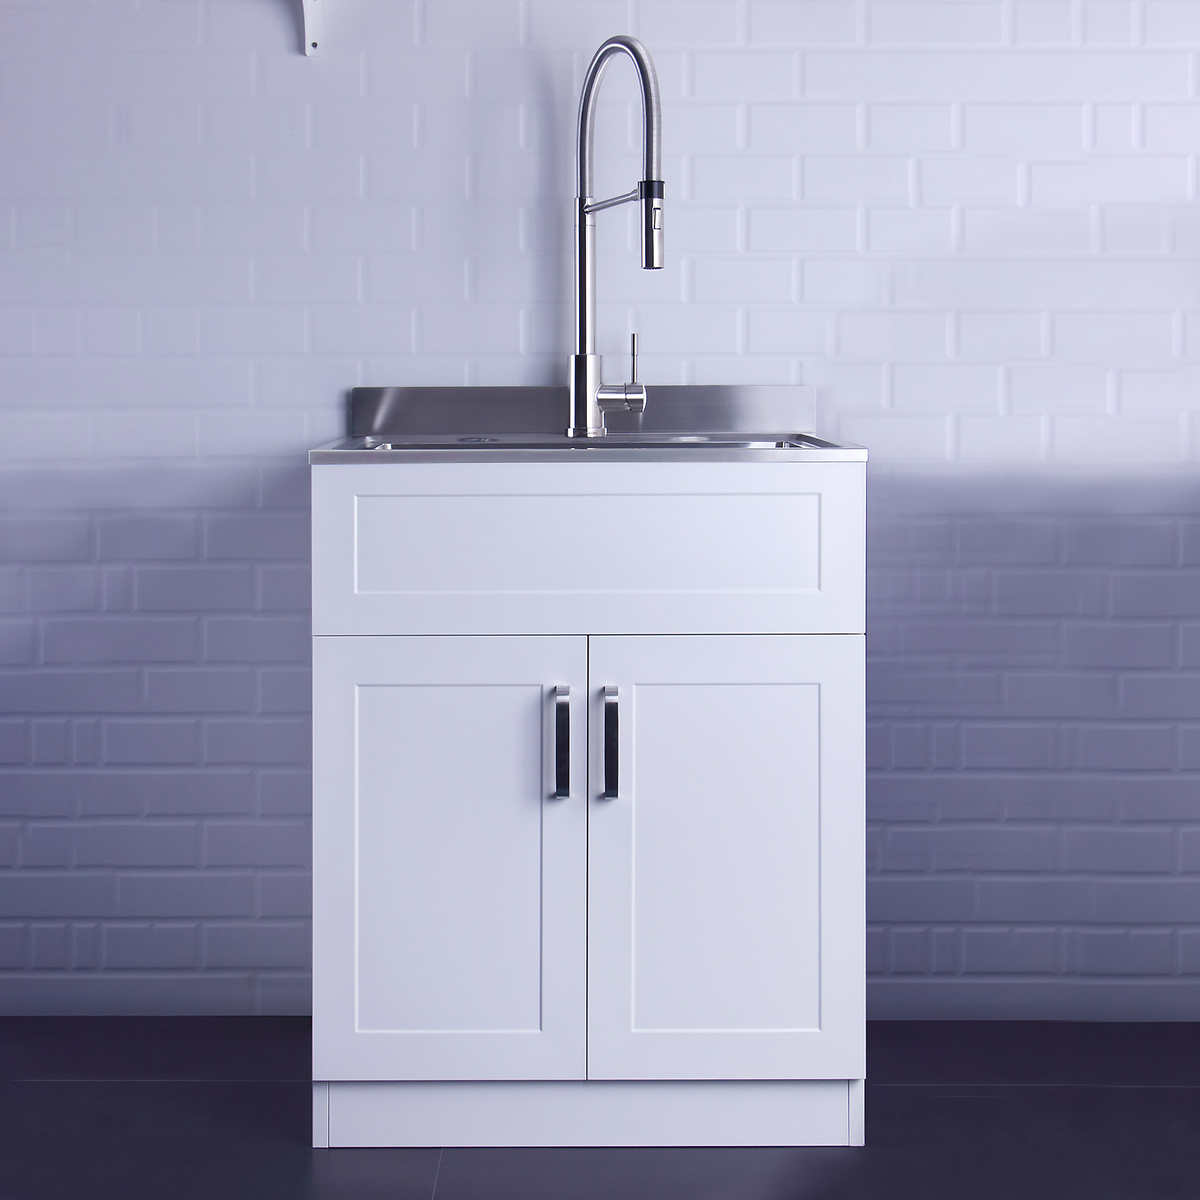 Stainless Steel Laundry Sink 25\